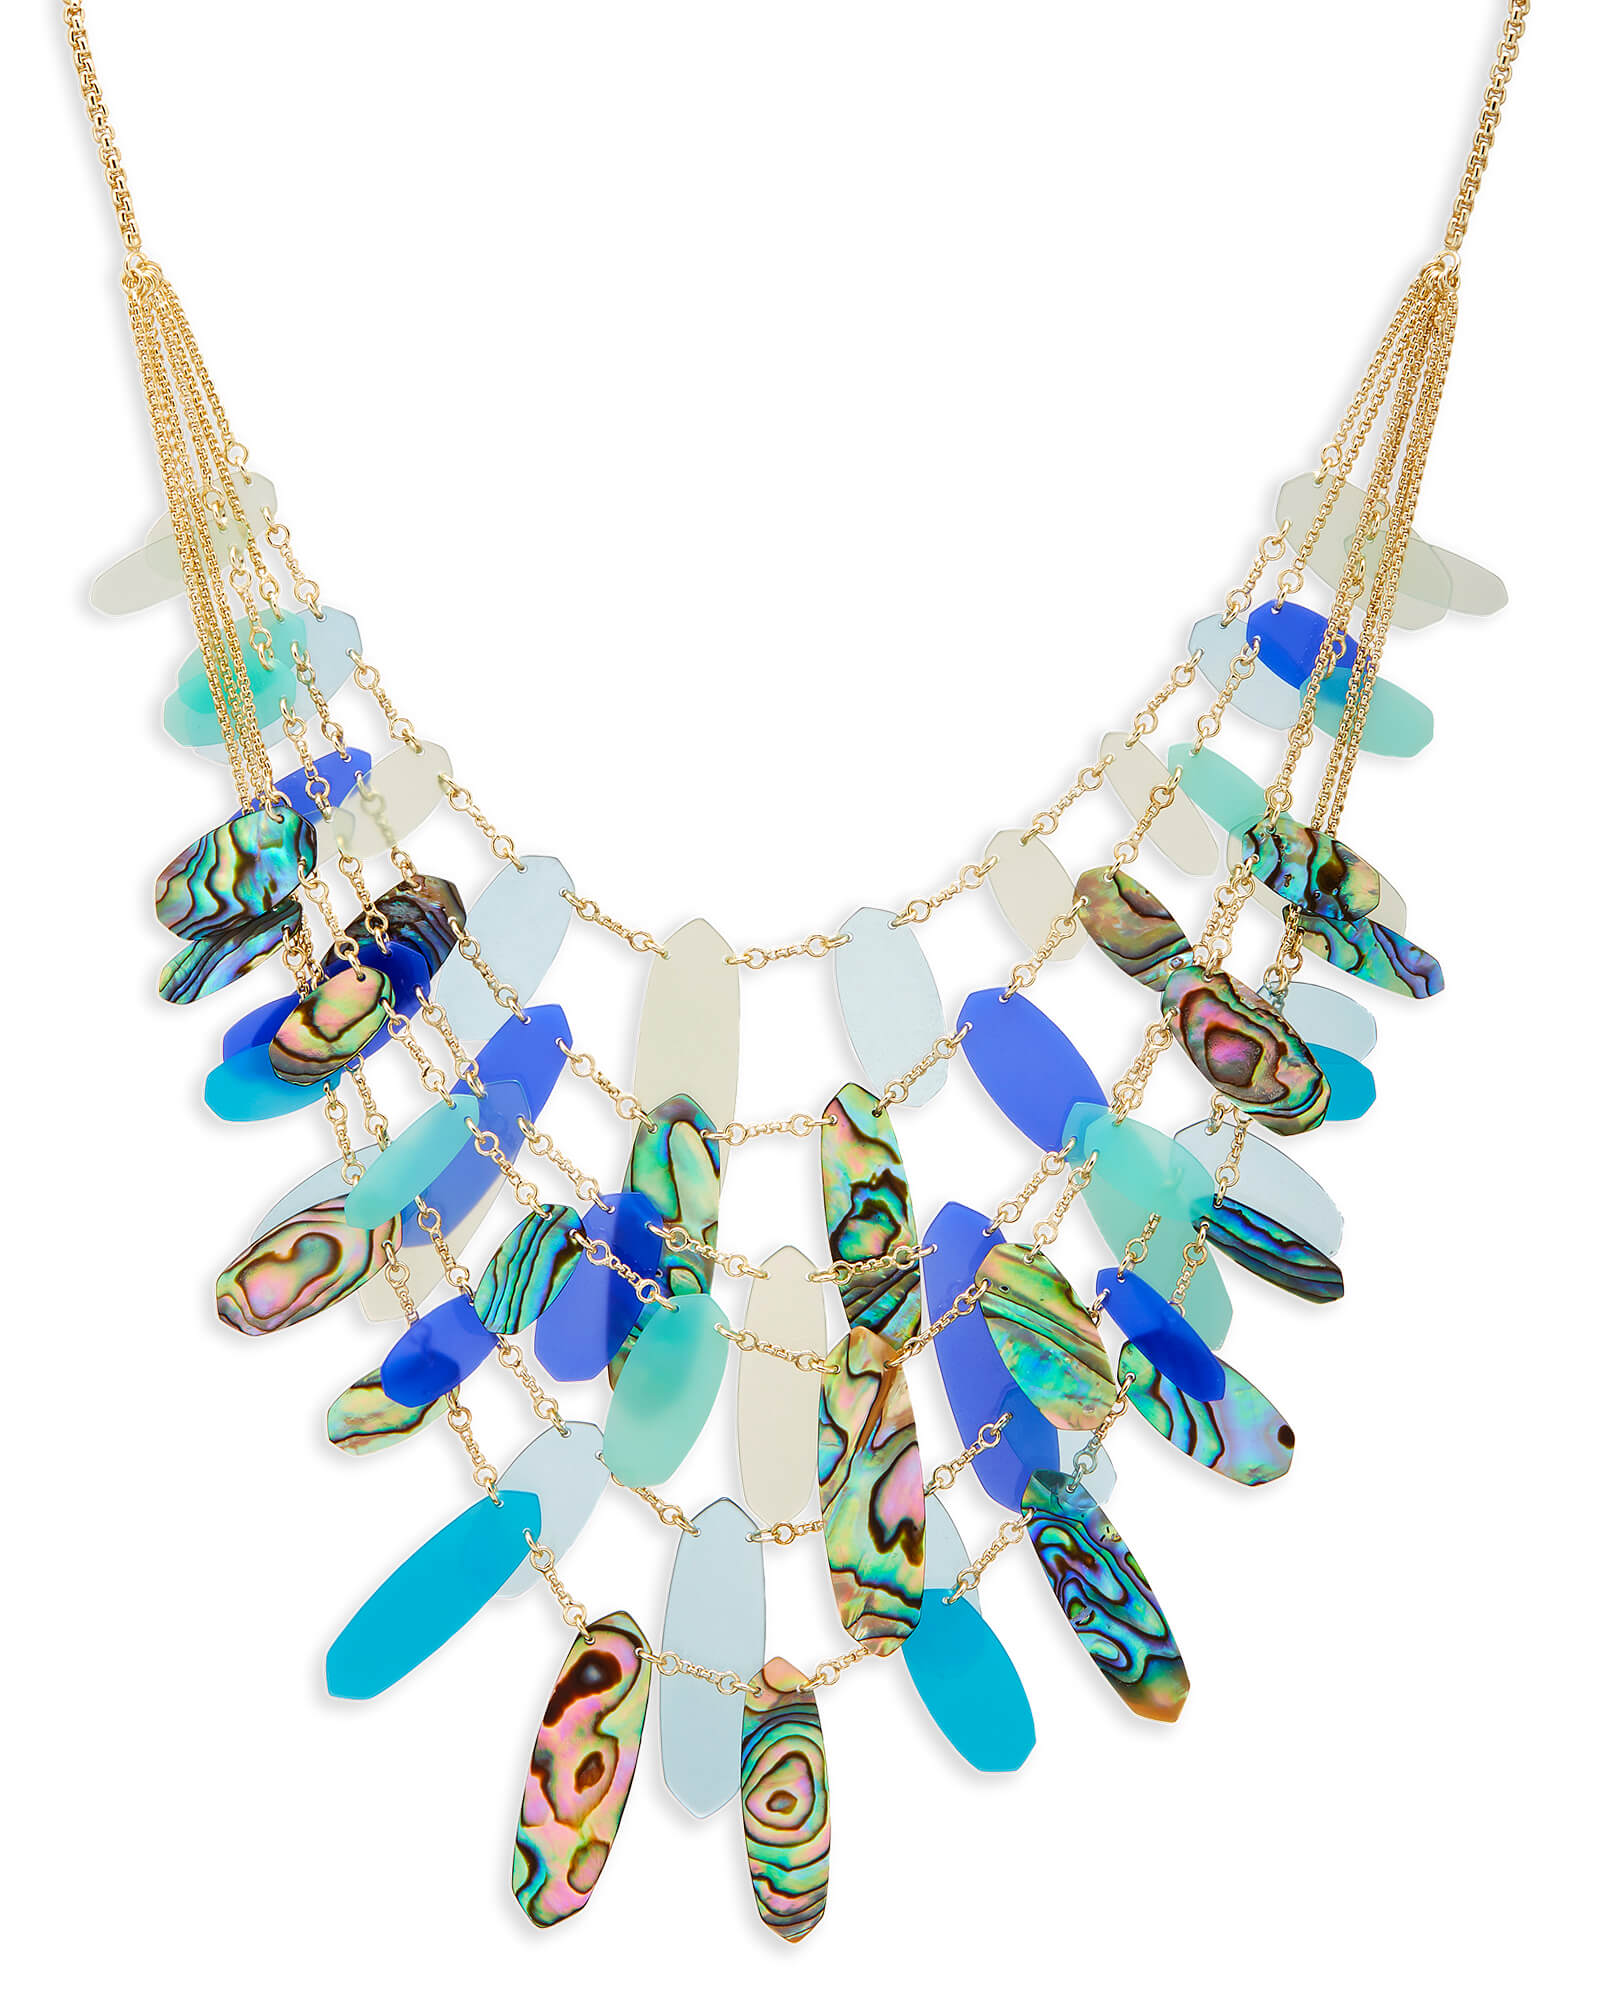 Patricia Statement Necklace